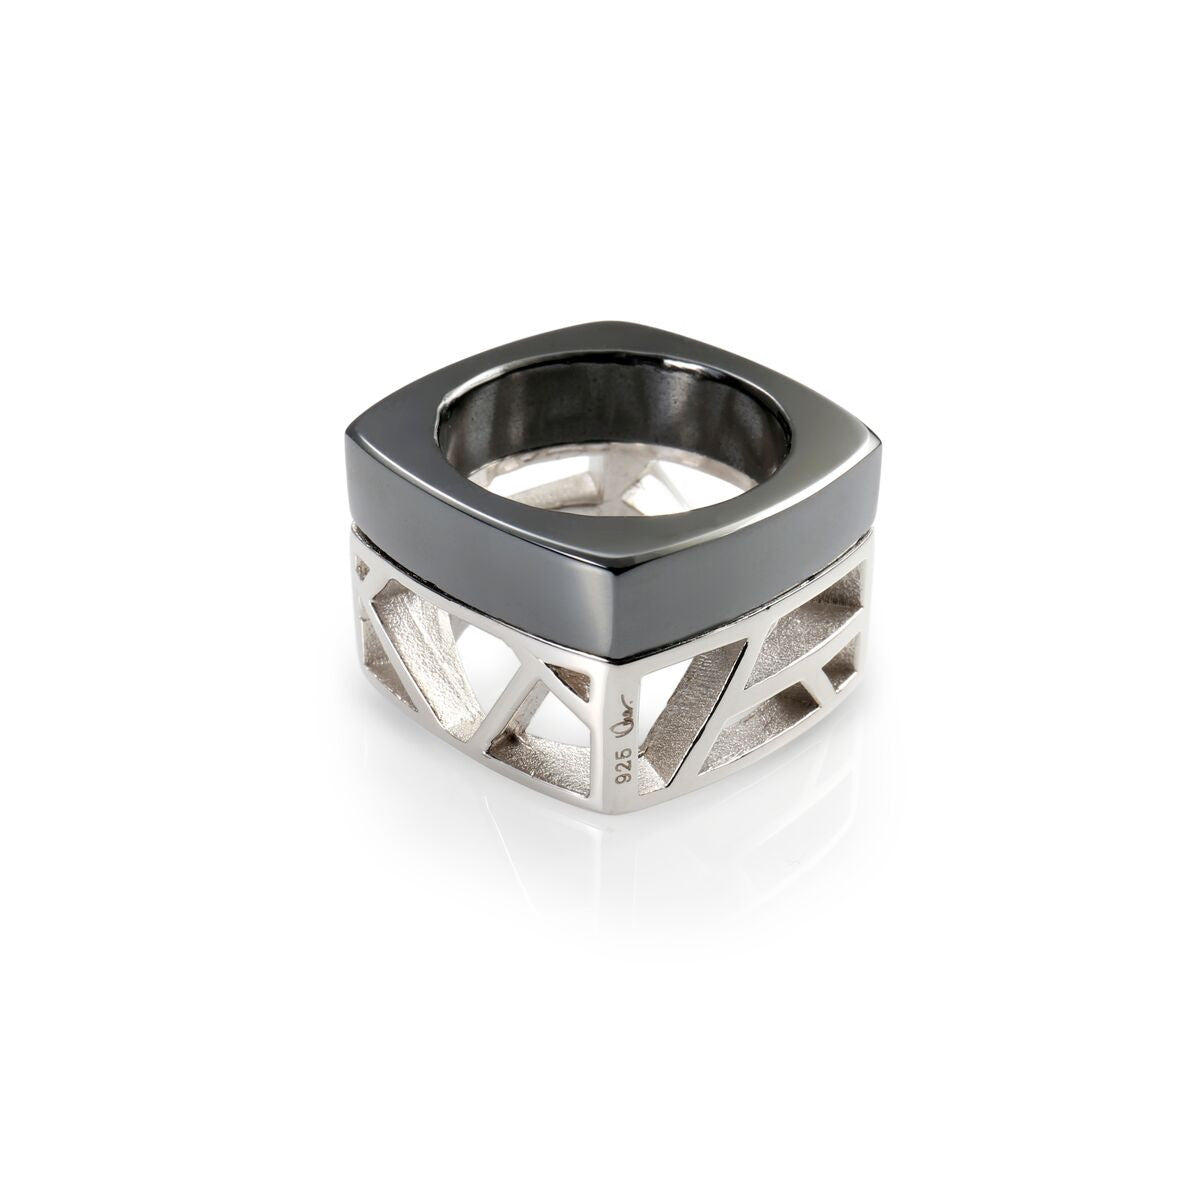 Lattice Unisex Square Ring - Hematite